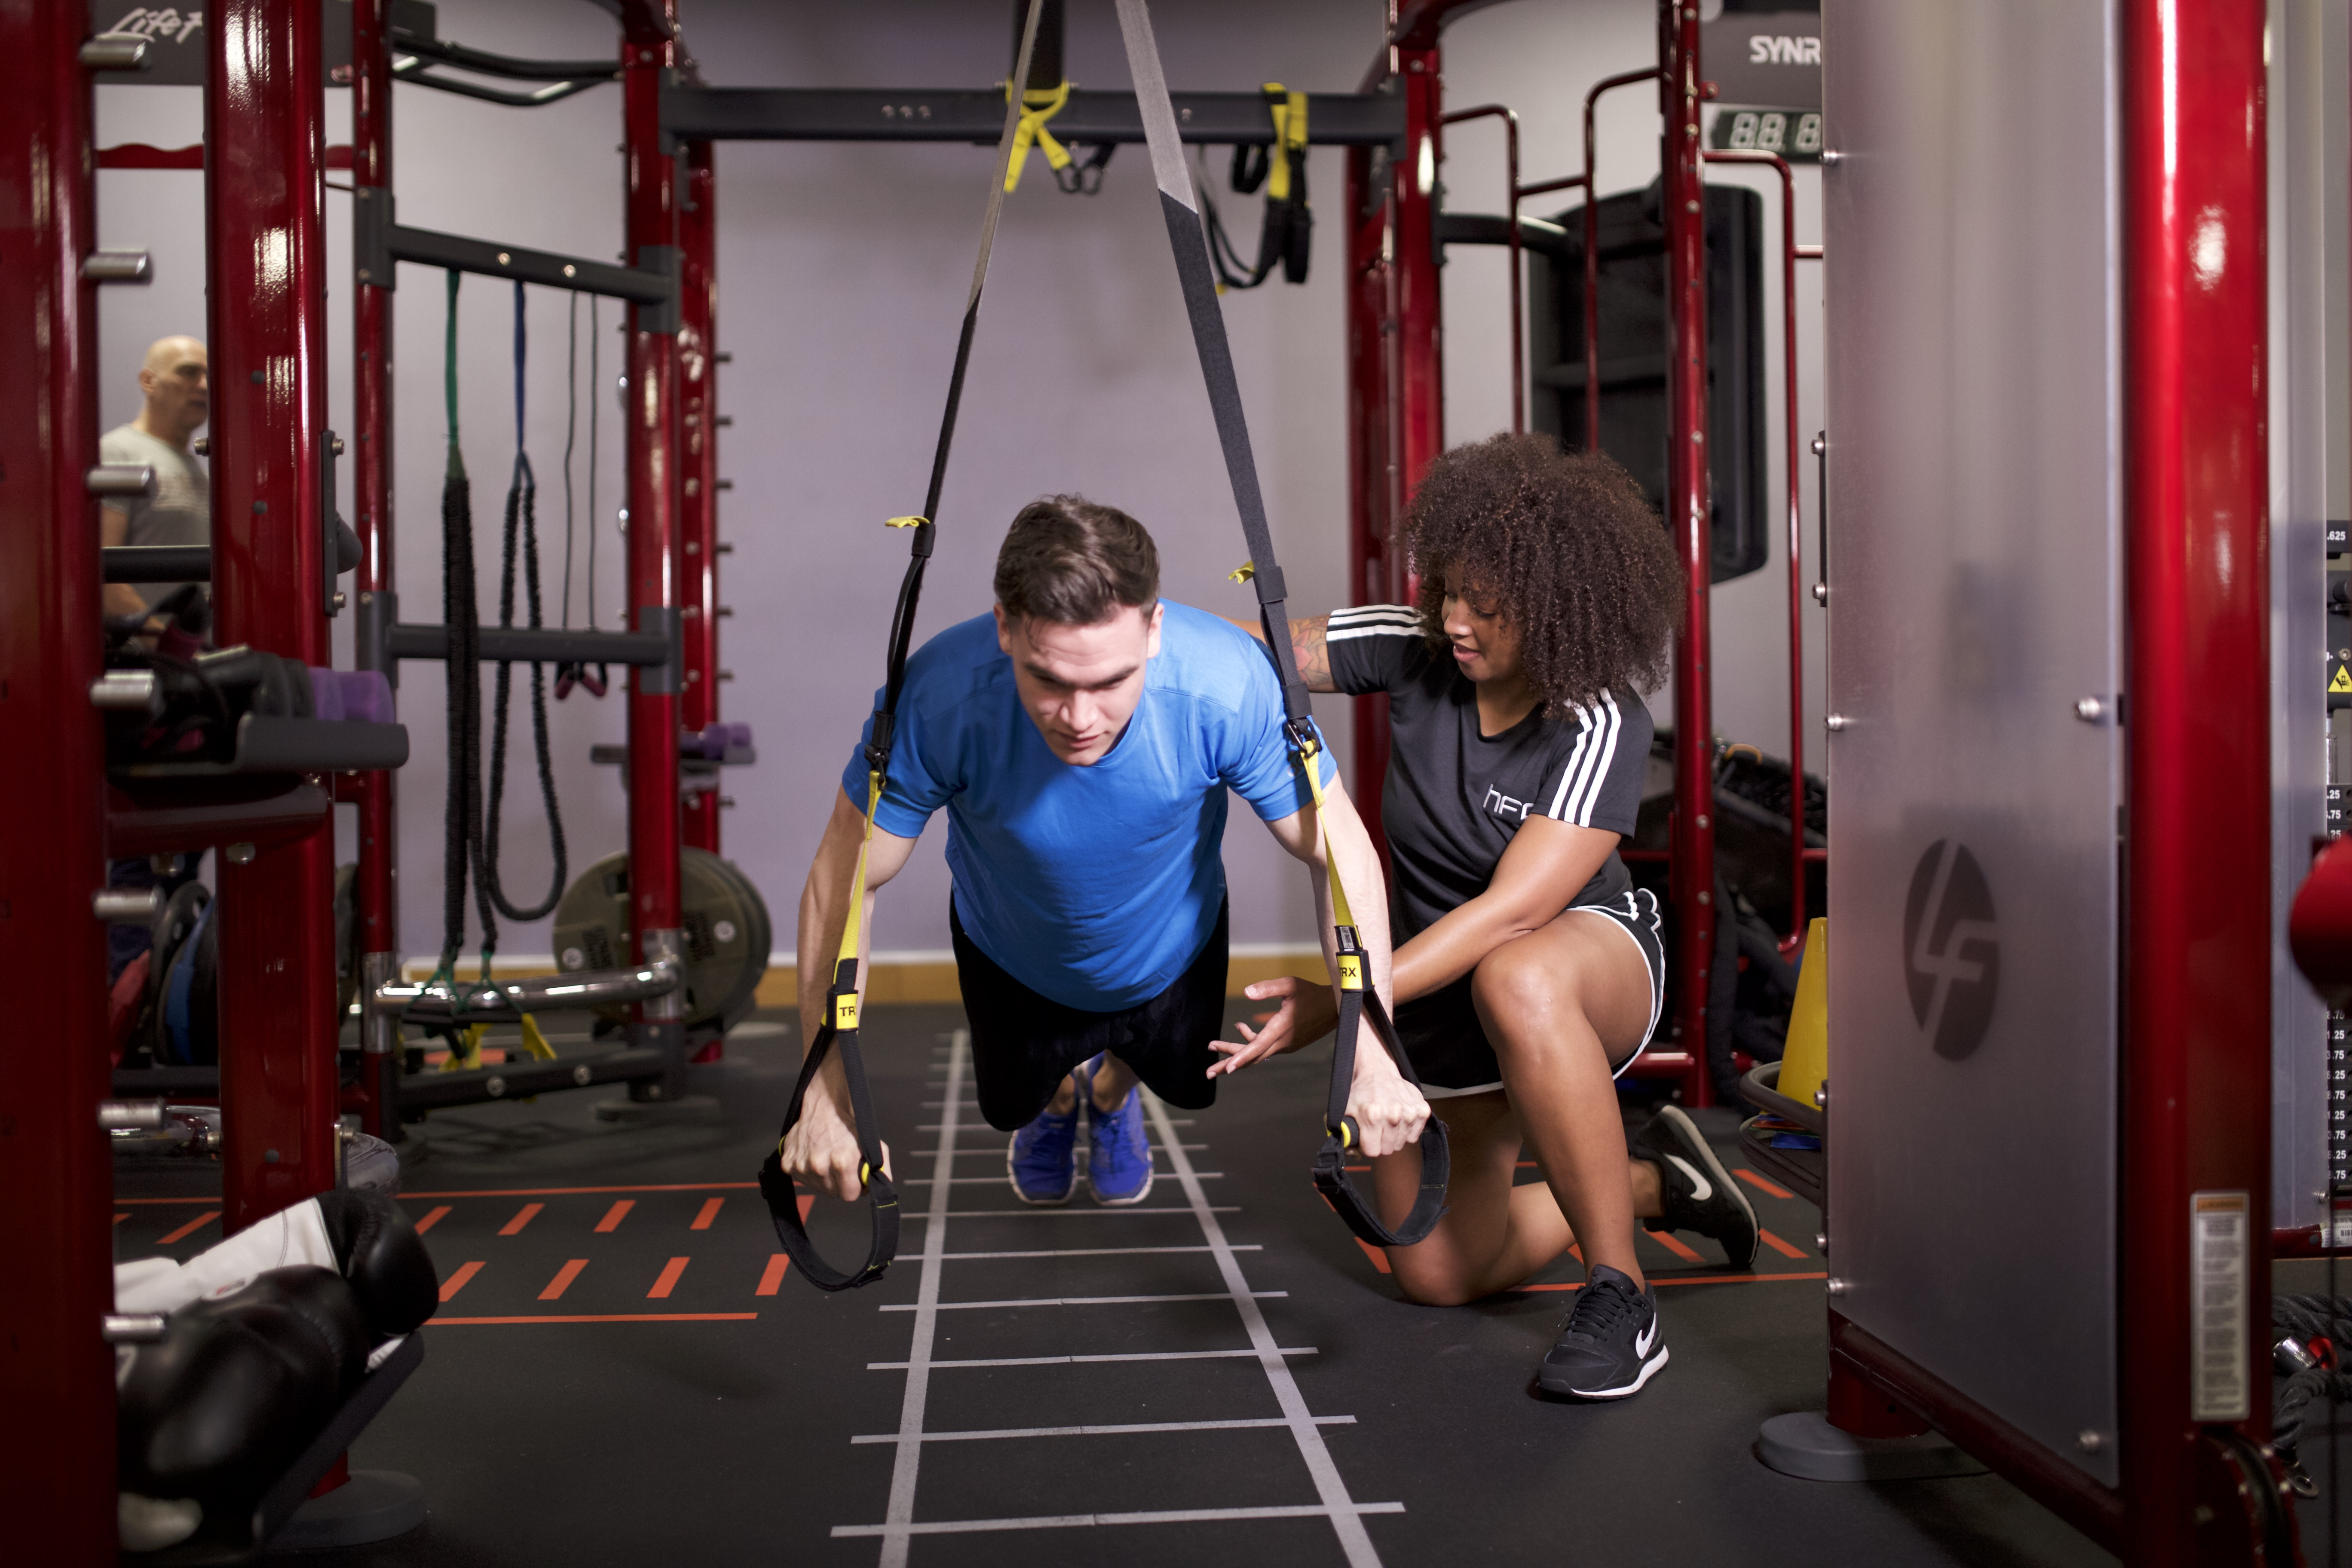 Why Should You Become a Personal Trainer?